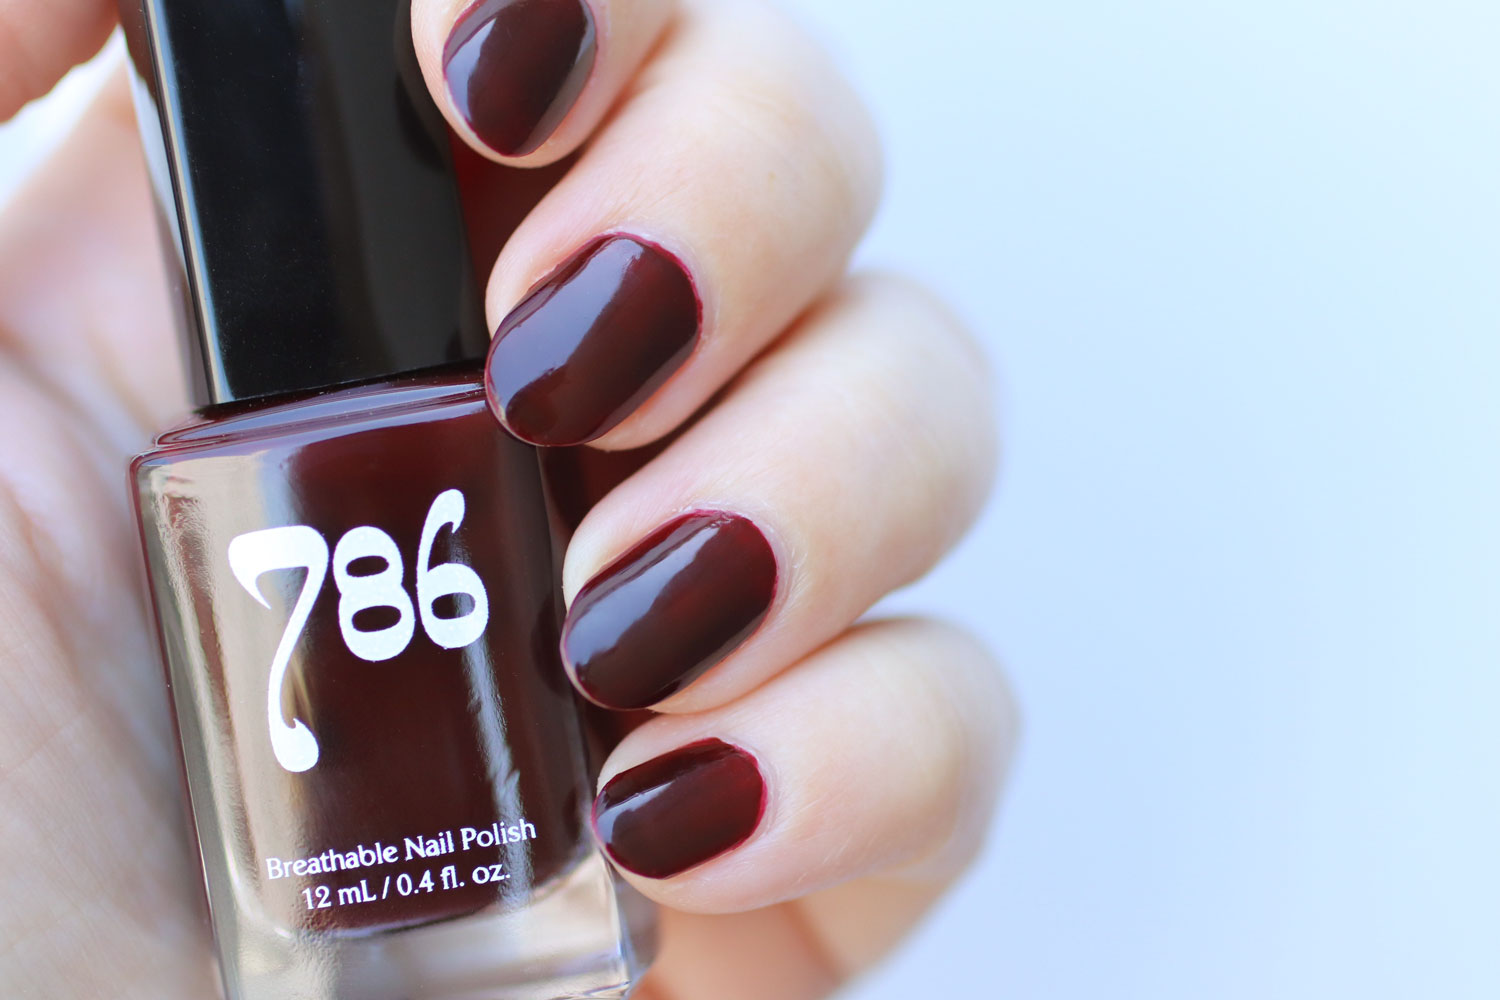 786 Cosmetics Breathable Cruelty Free and Vegan Nail Polish Swatch - Istanbul